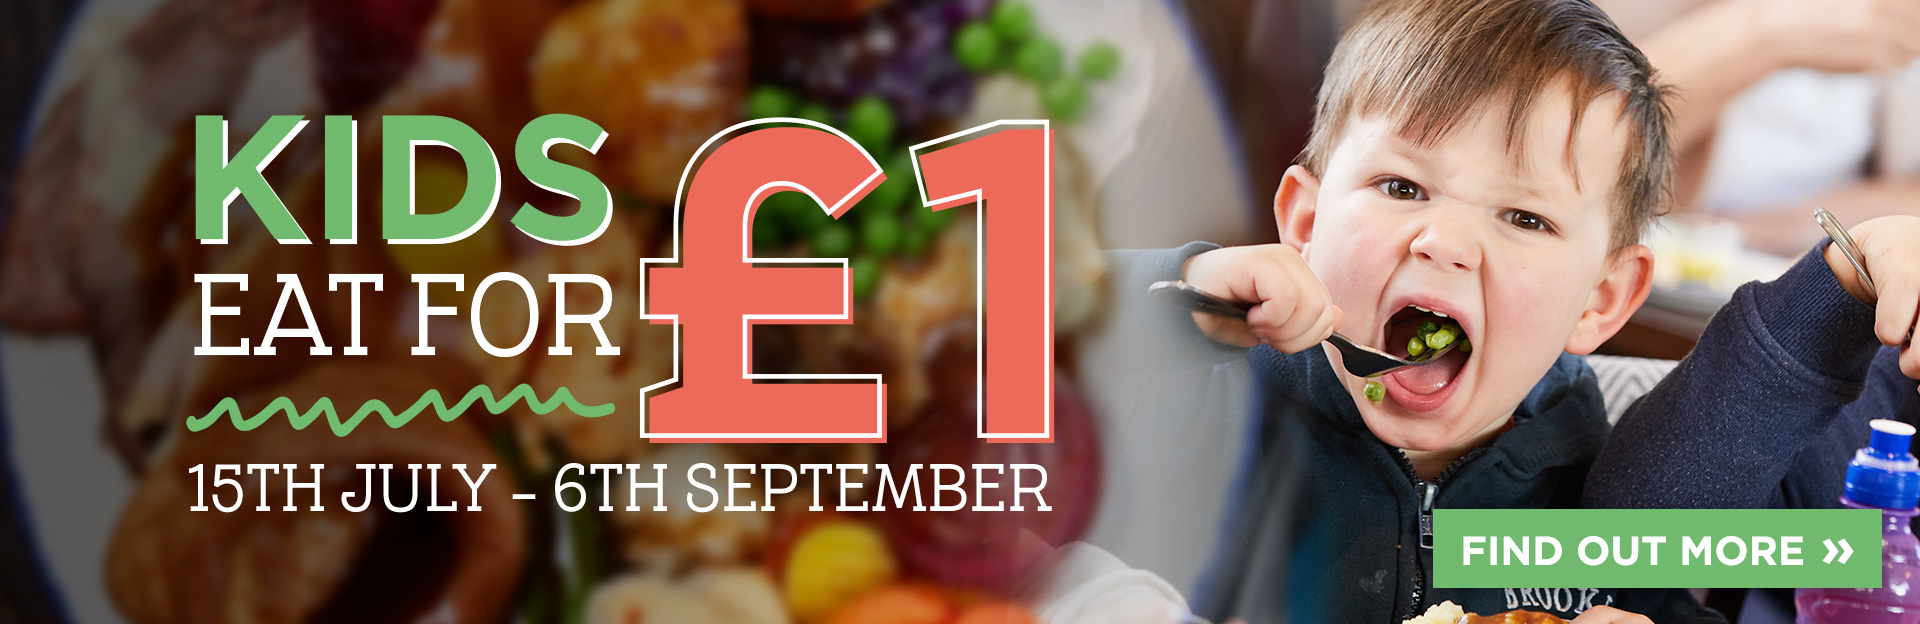 Kids Eat for £1 at The Bulls Head